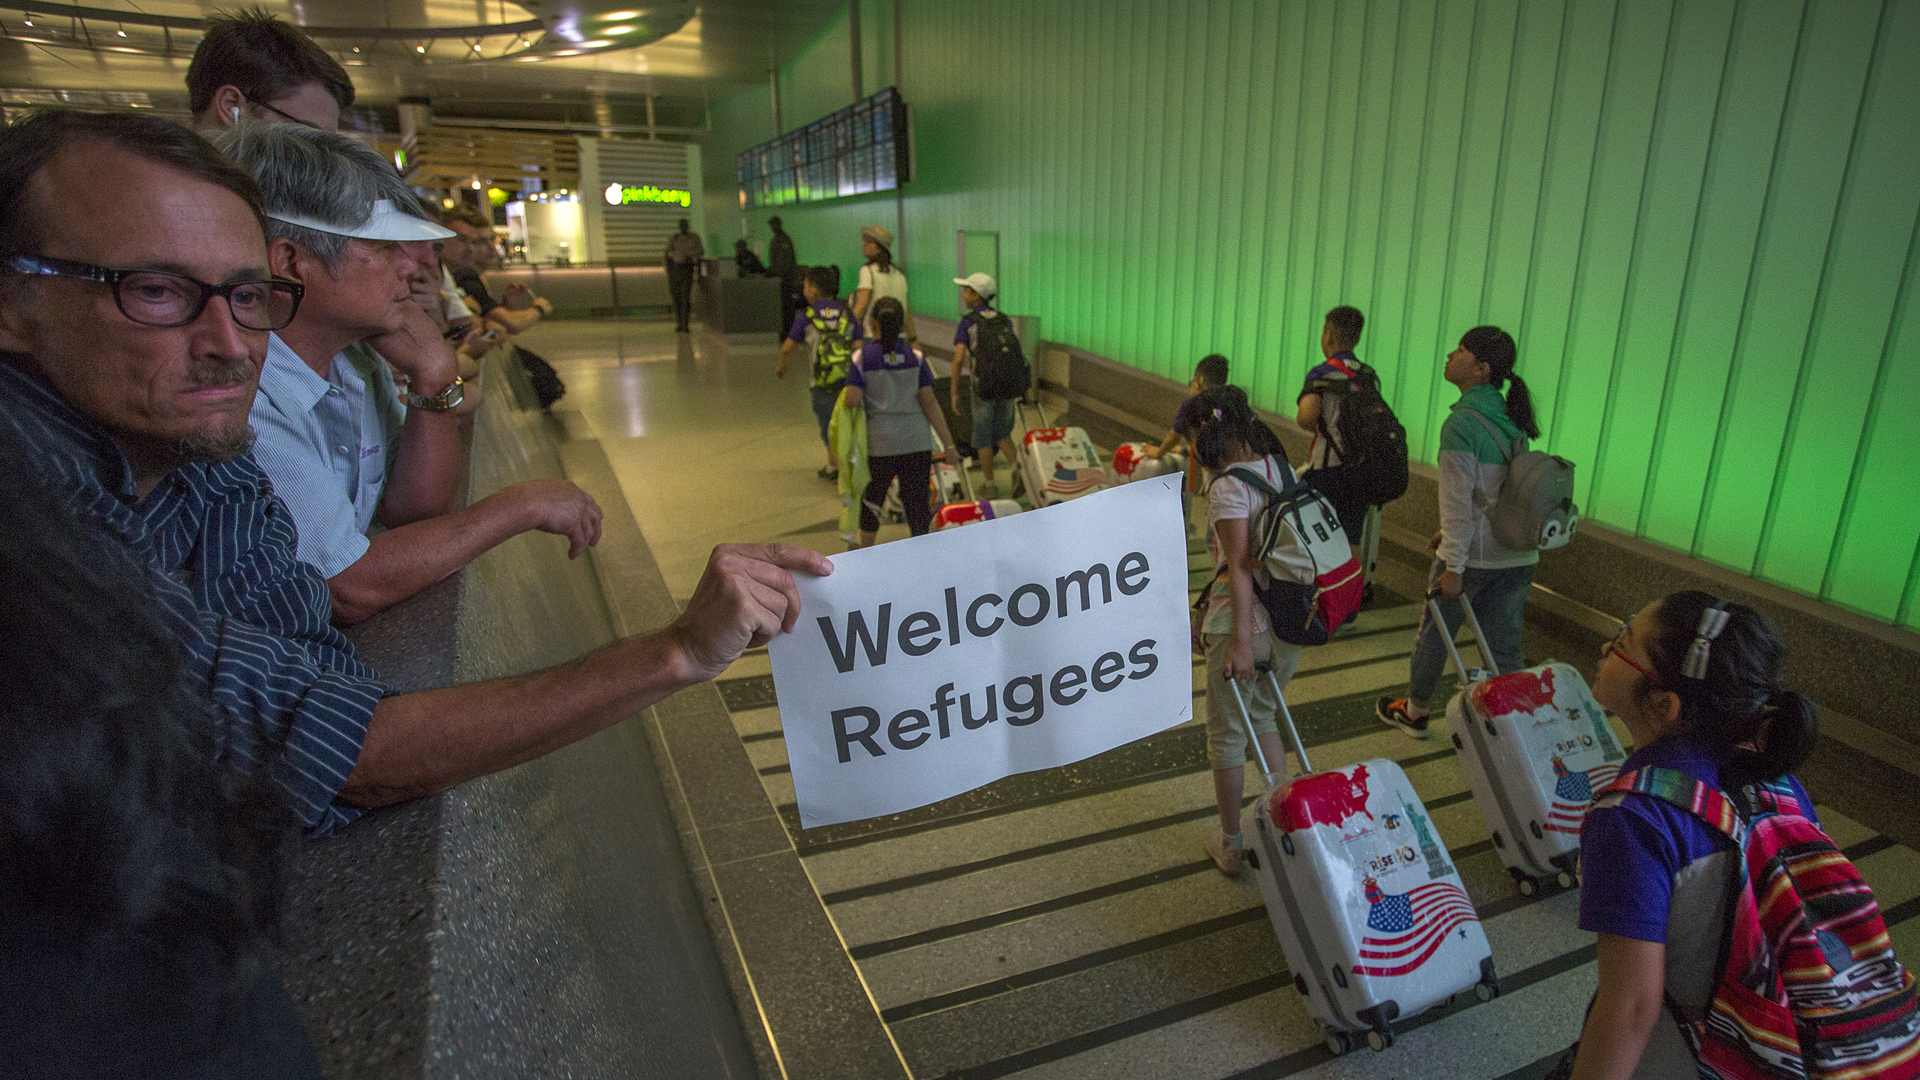 John Wider carries a welcome sign near arriving international travelers on the first day of the the partial reinstatement of the Trump travel ban, temporarily barring travelers from six Muslim-majority nations from entering the U.S., at Los Angeles International Airport (LAX) on June 29, 2017, in Los Angeles. (Credit: David McNew/Getty Images)